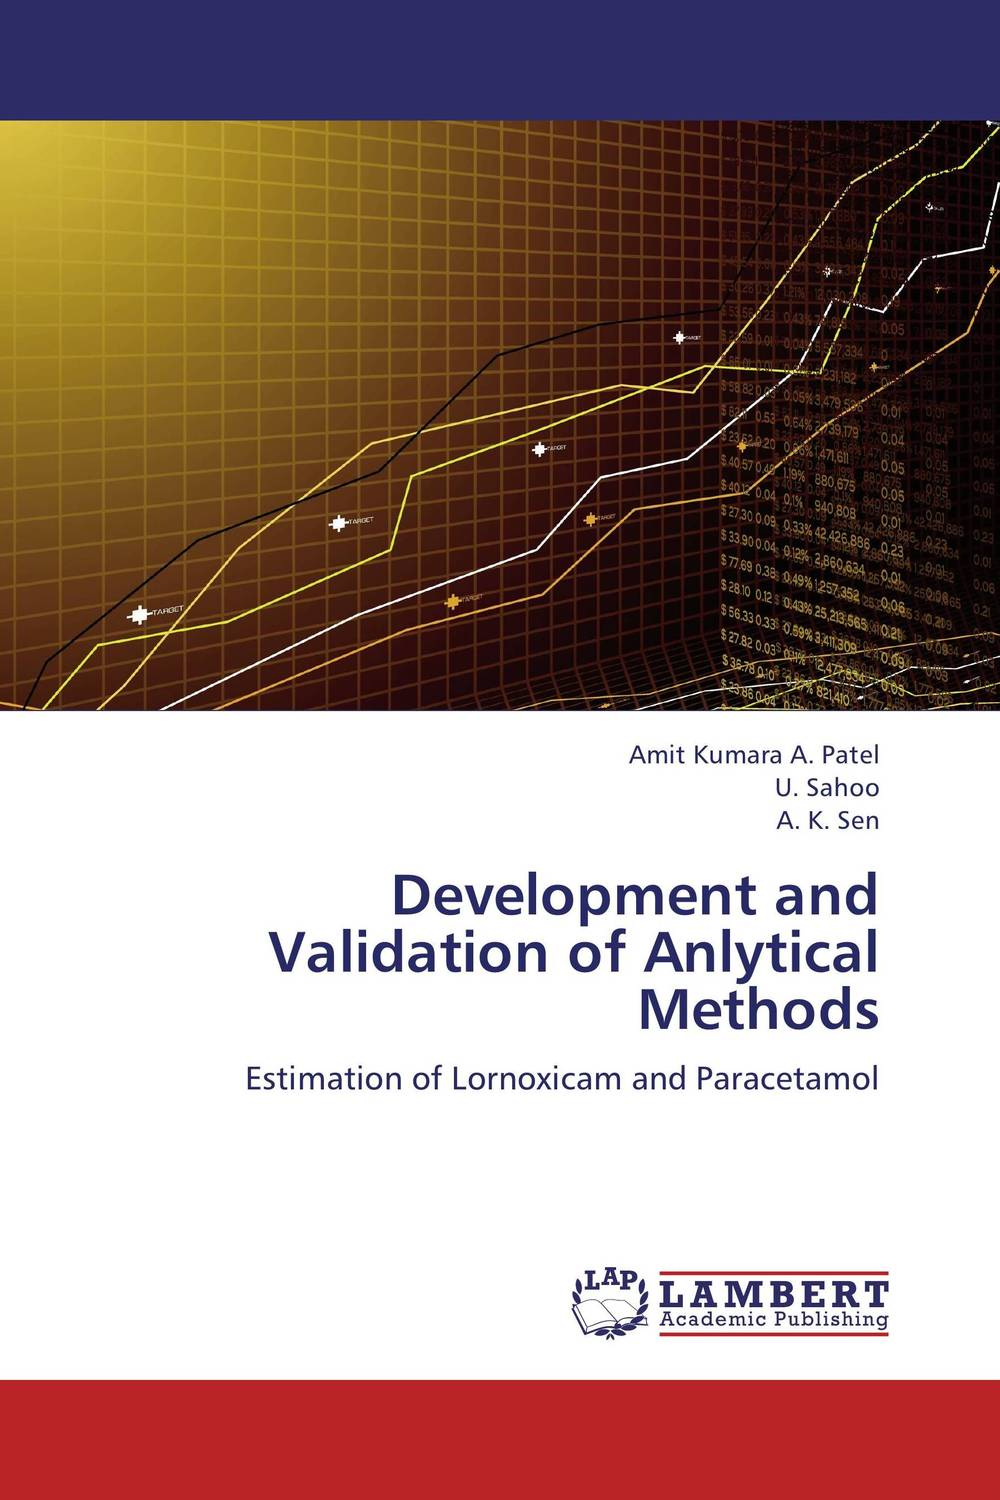 Development and Validation of Anlytical Methods  amit kumara a patel u sahoo and a k sen development and validation of anlytical methods